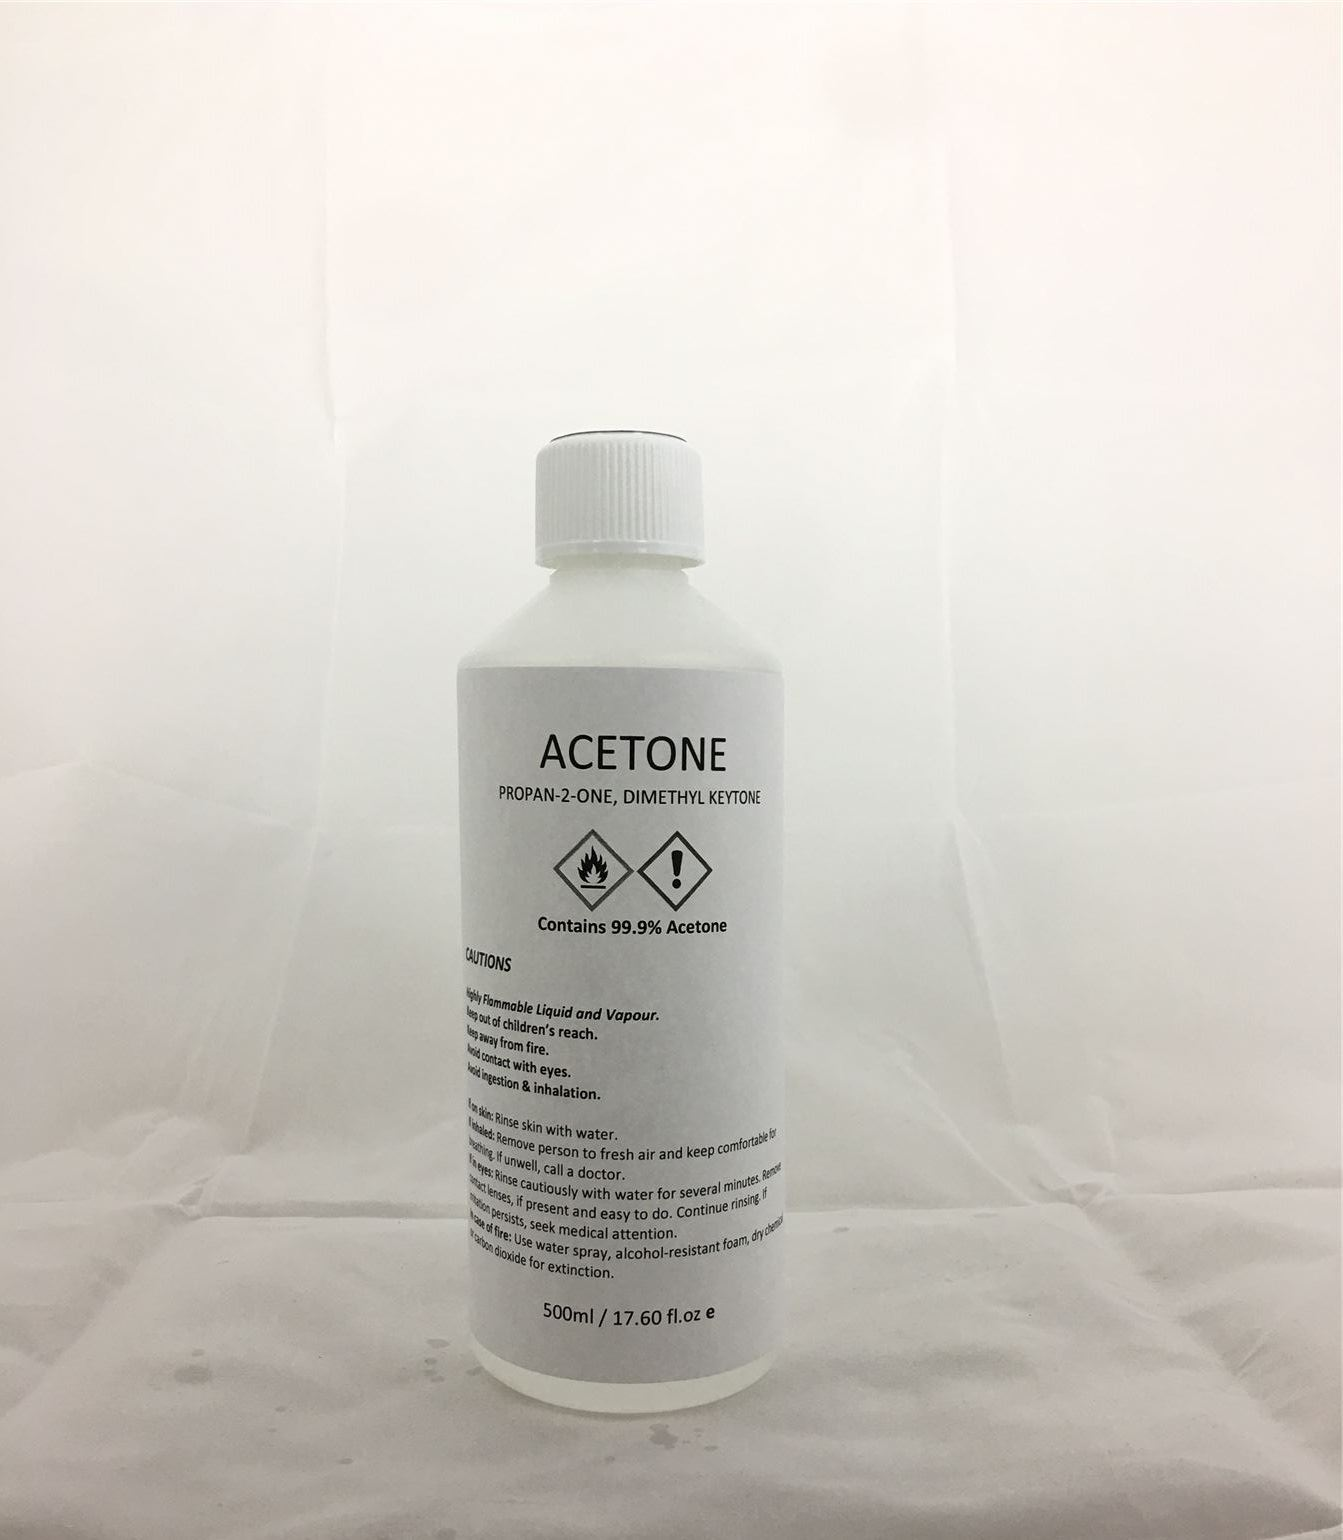 Details about Acetone 99 9% Pure High Quality ACS/Lab Grade Nail Varnish  Remover 500ml Size